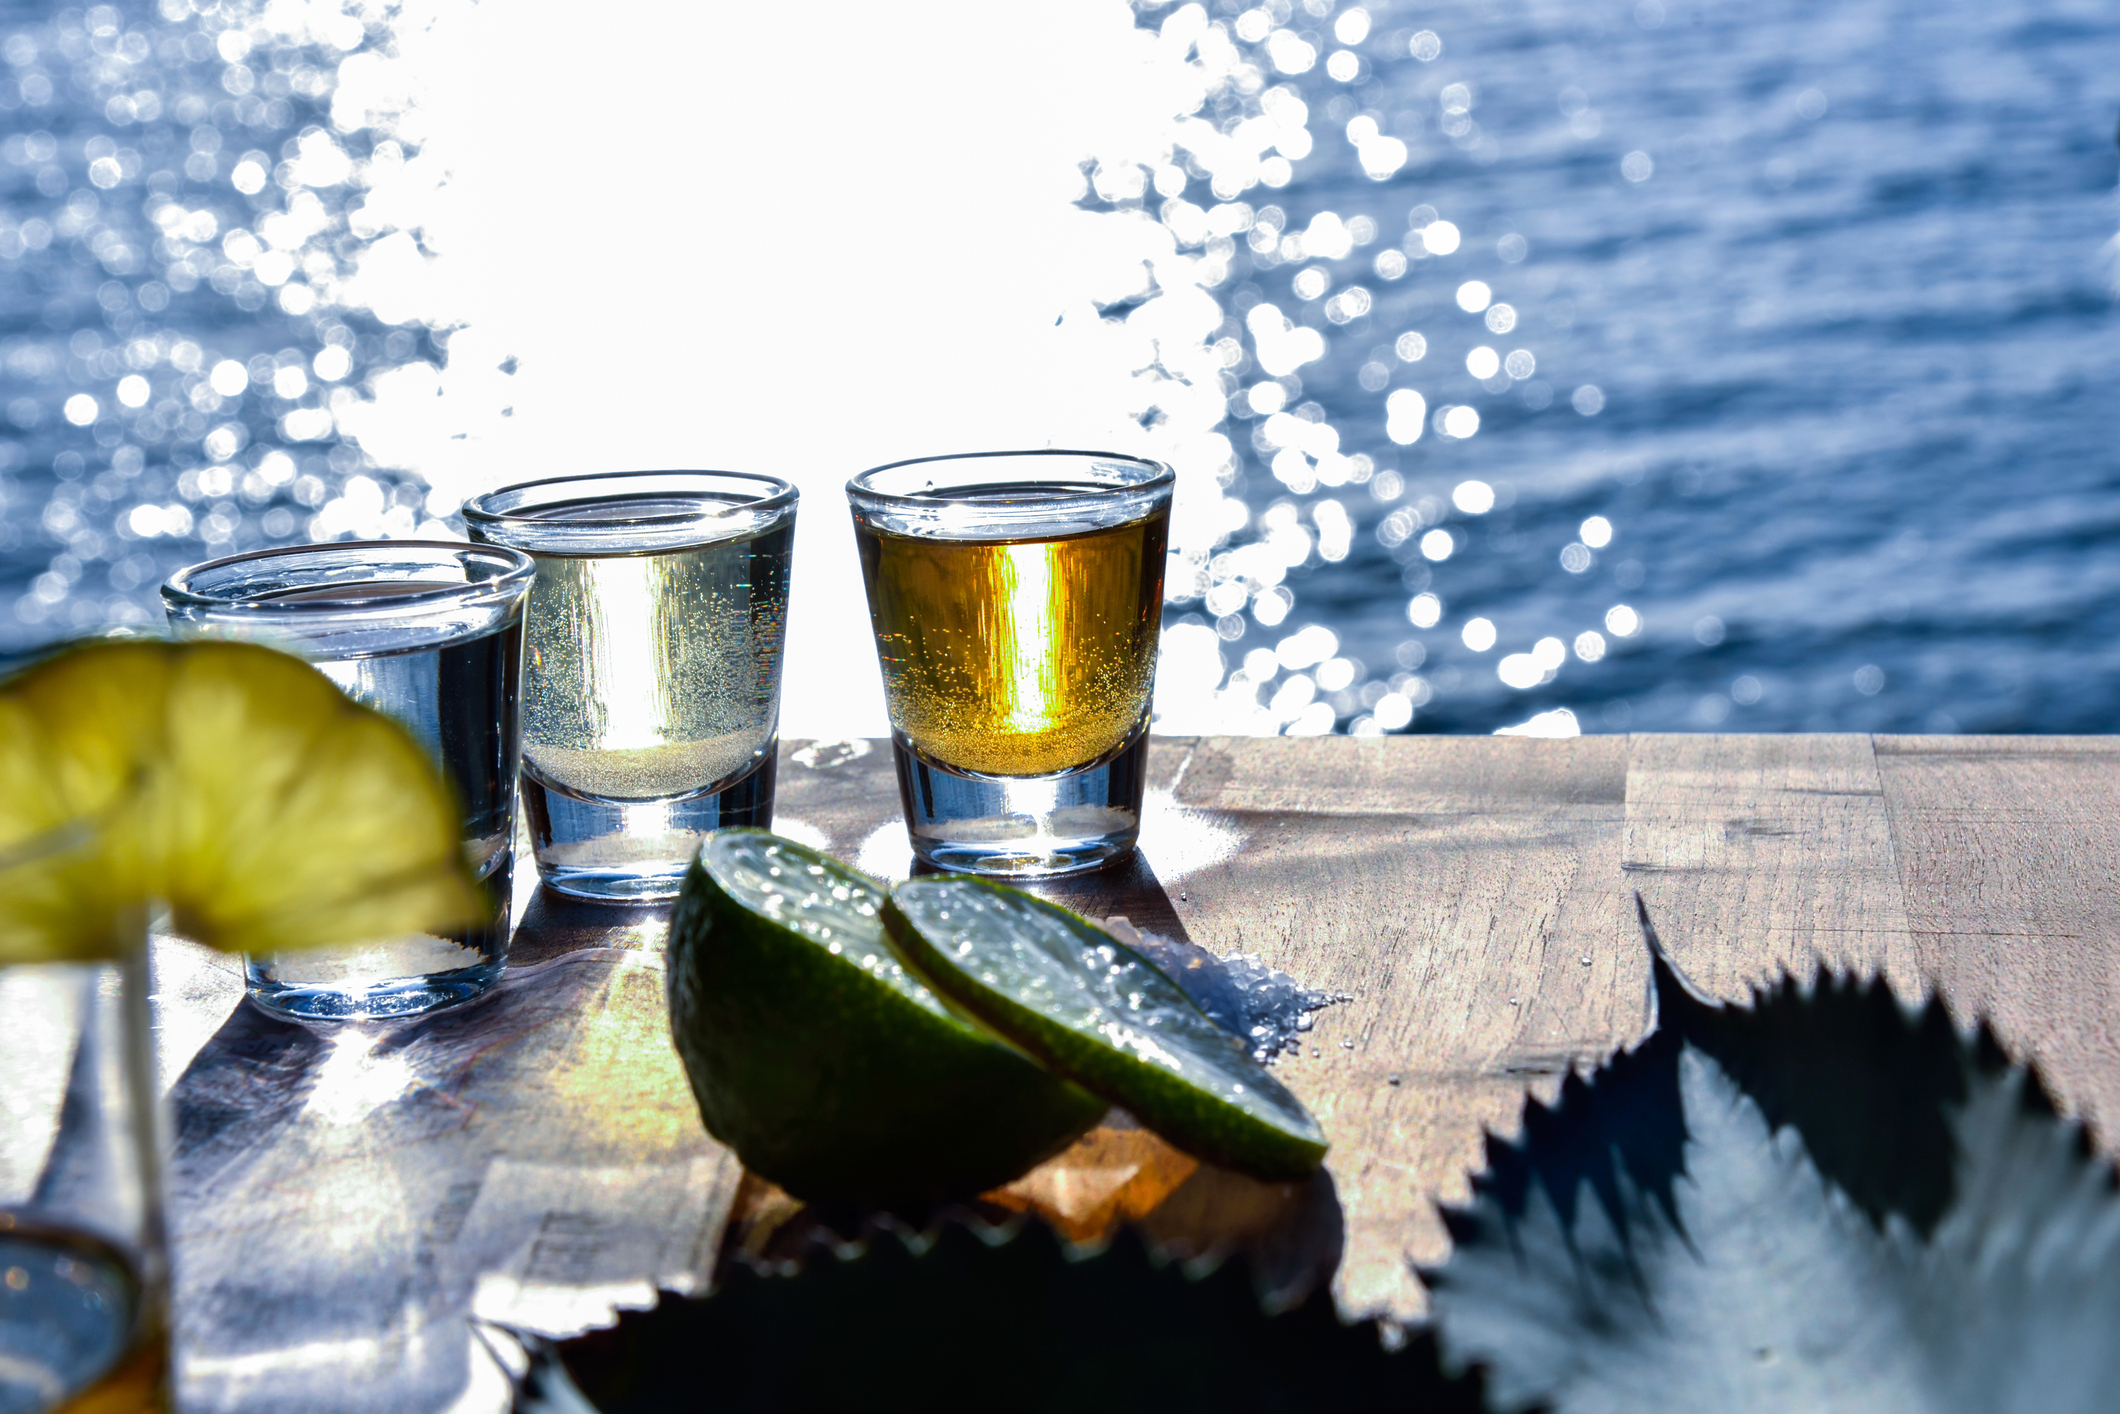 Close-Up Of Tequila Shots With Lemon On Table By Sea